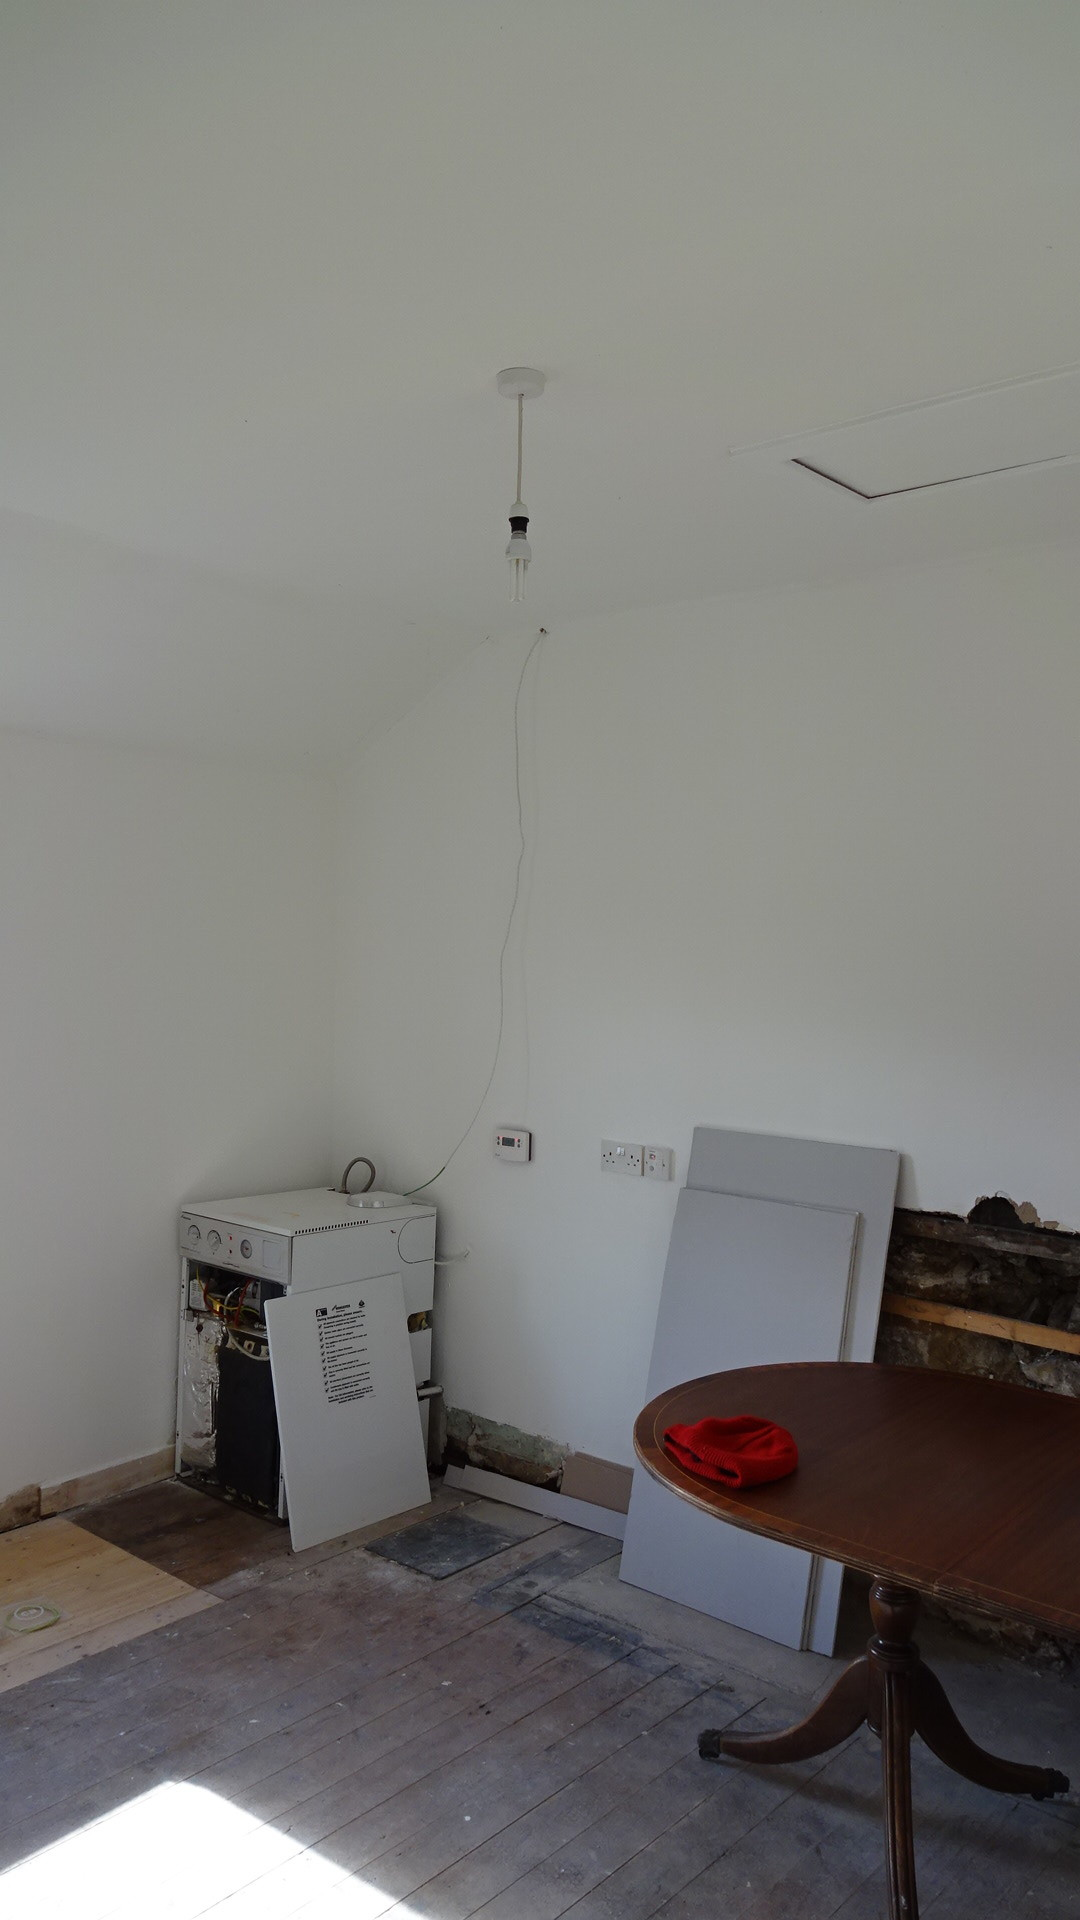 Location for new rose, pendant and lamp